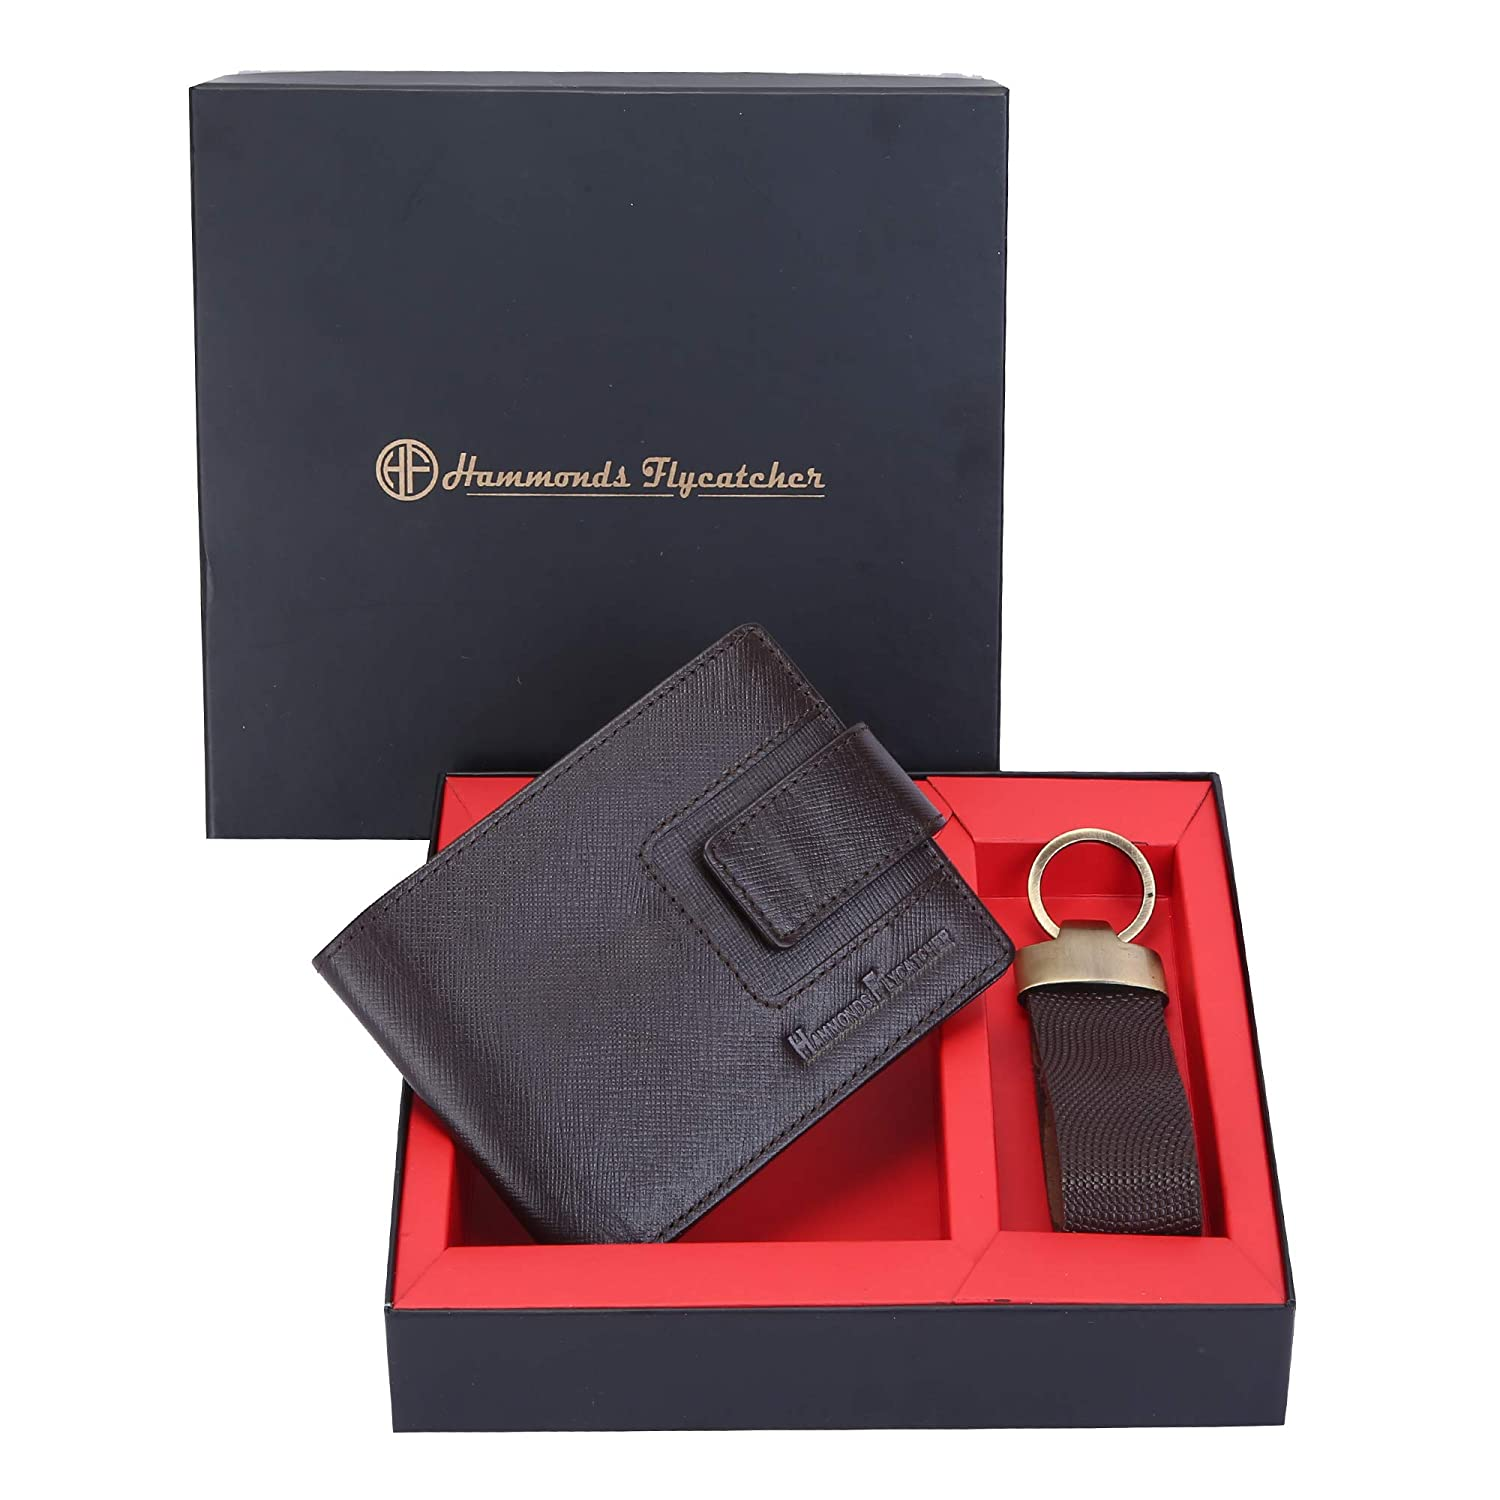 c94bebd64db11 Hammonds Flycatcher Men s Leather Bifold Wallet and Keychain Set (Brown)   Amazon.in  Bags